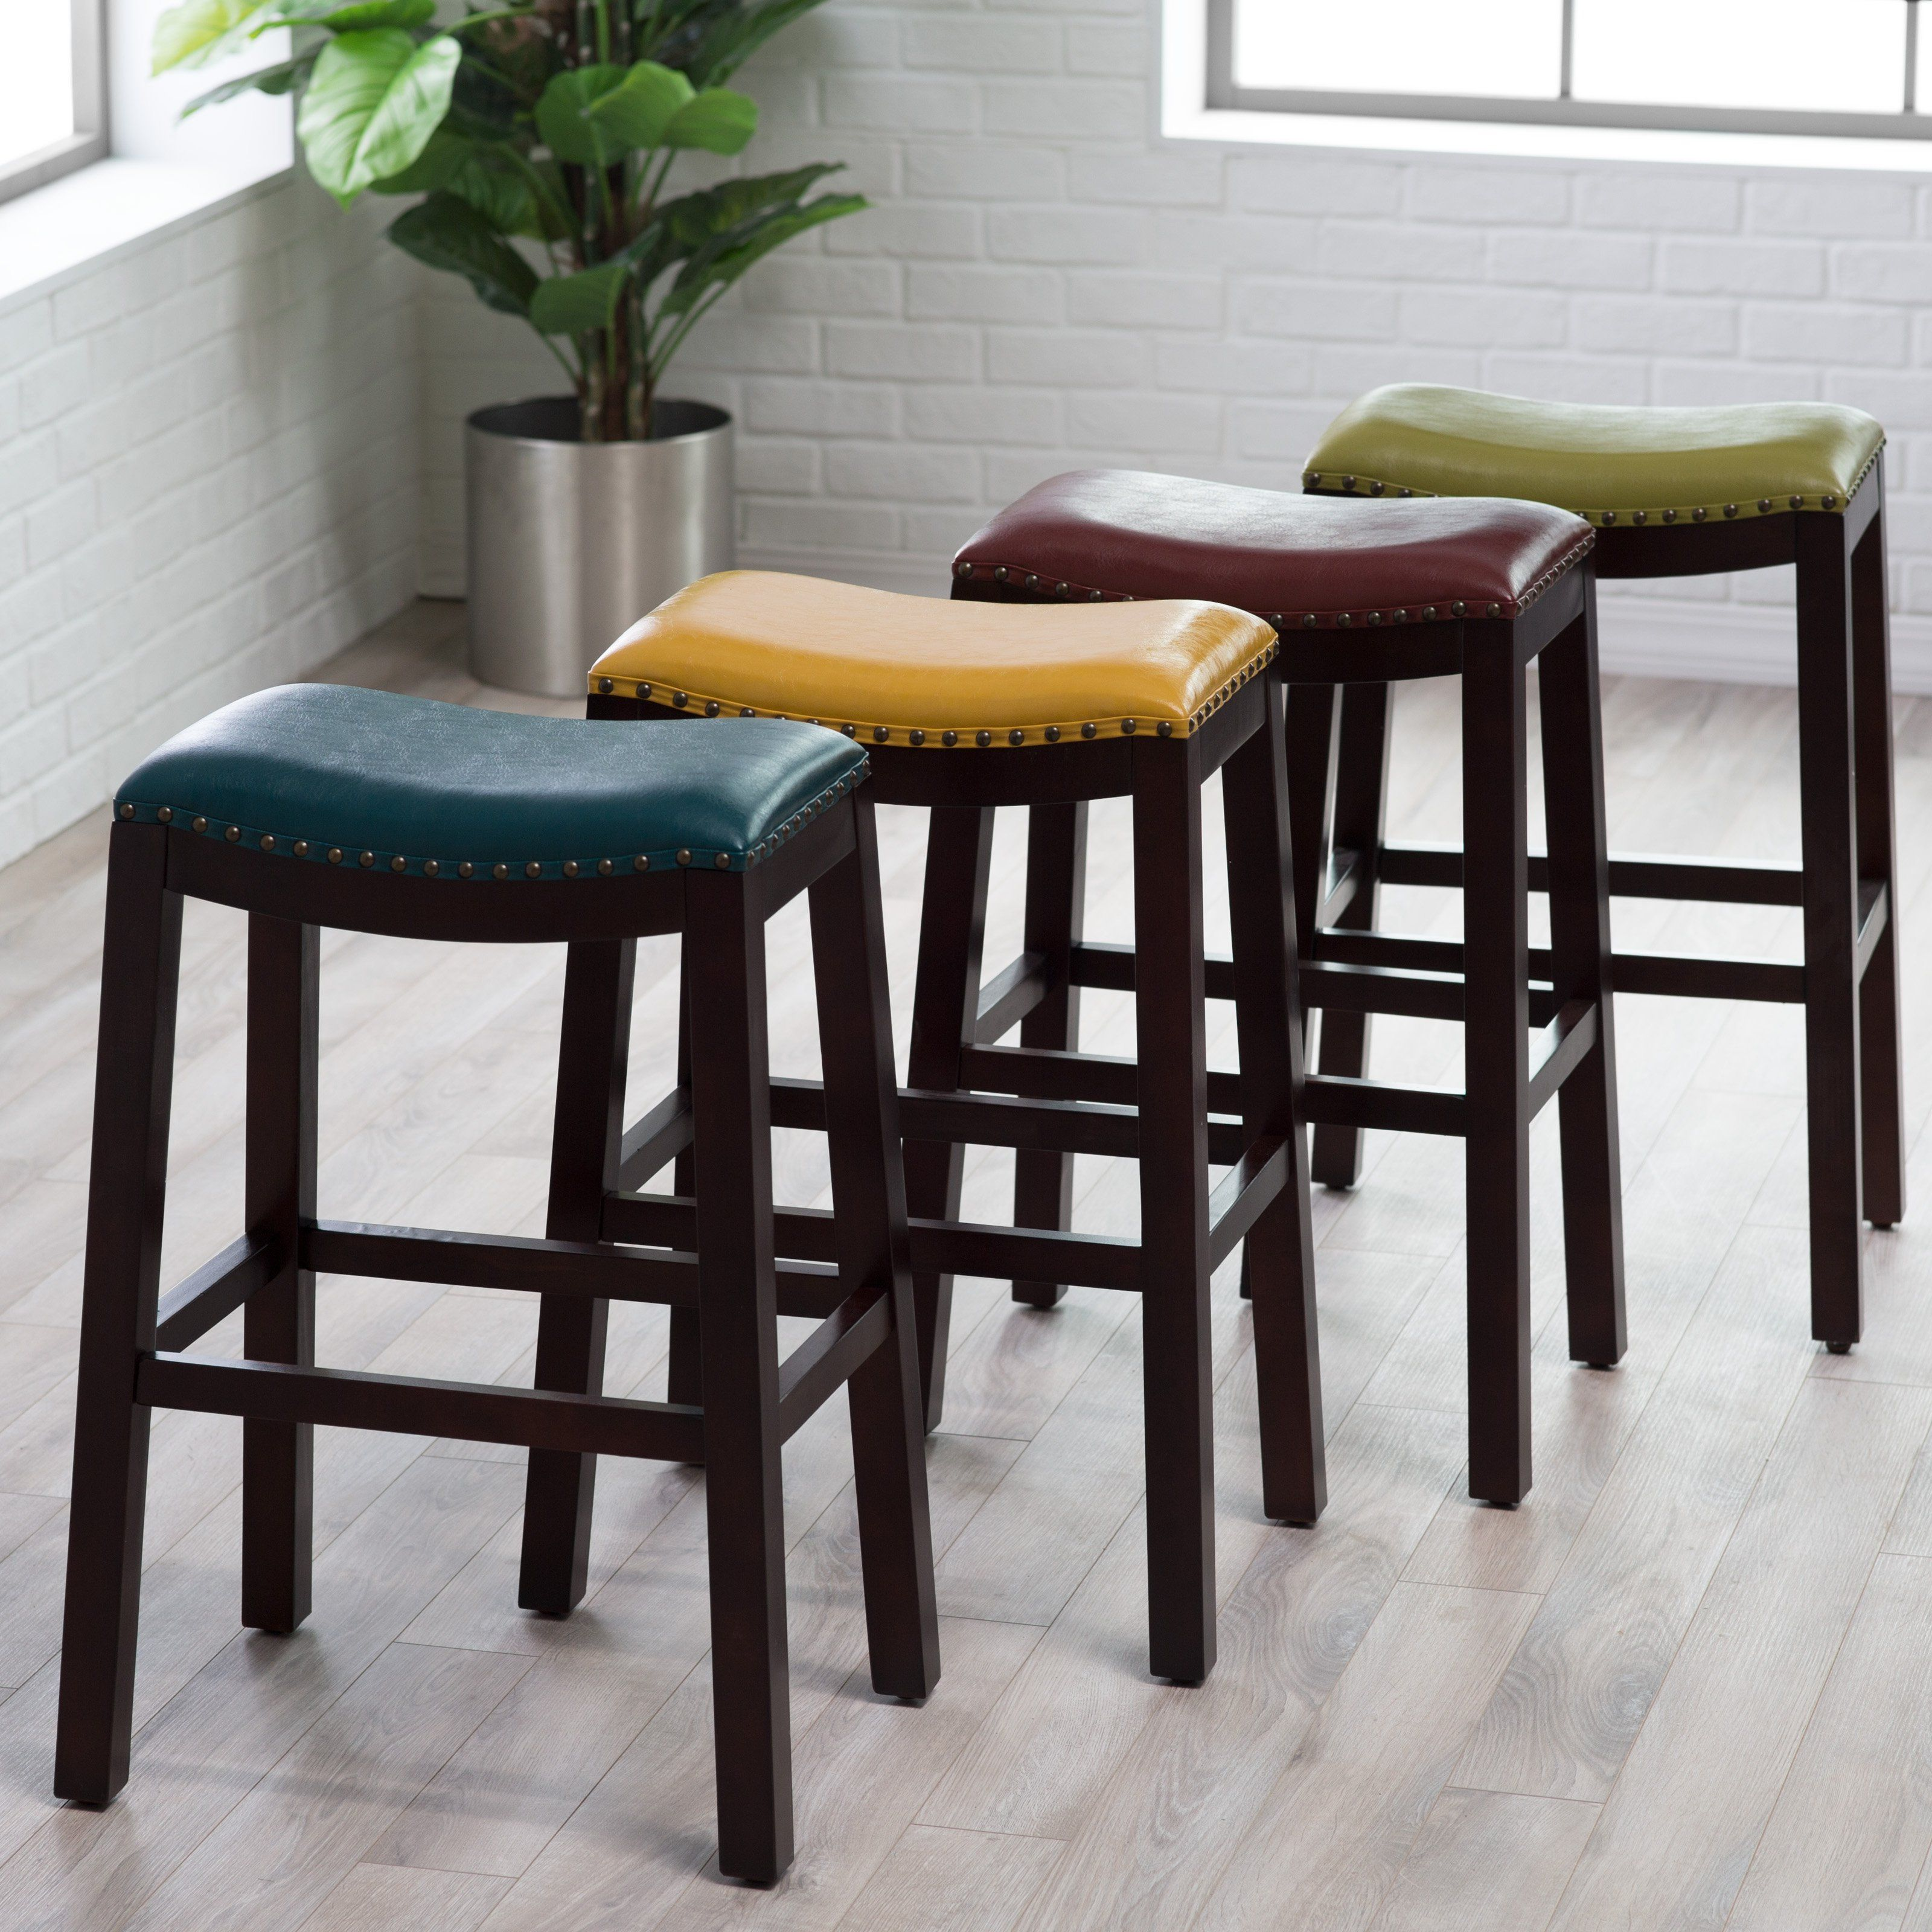 Belham Living Hutton Leather Backless Saddle Bar Stool with ...